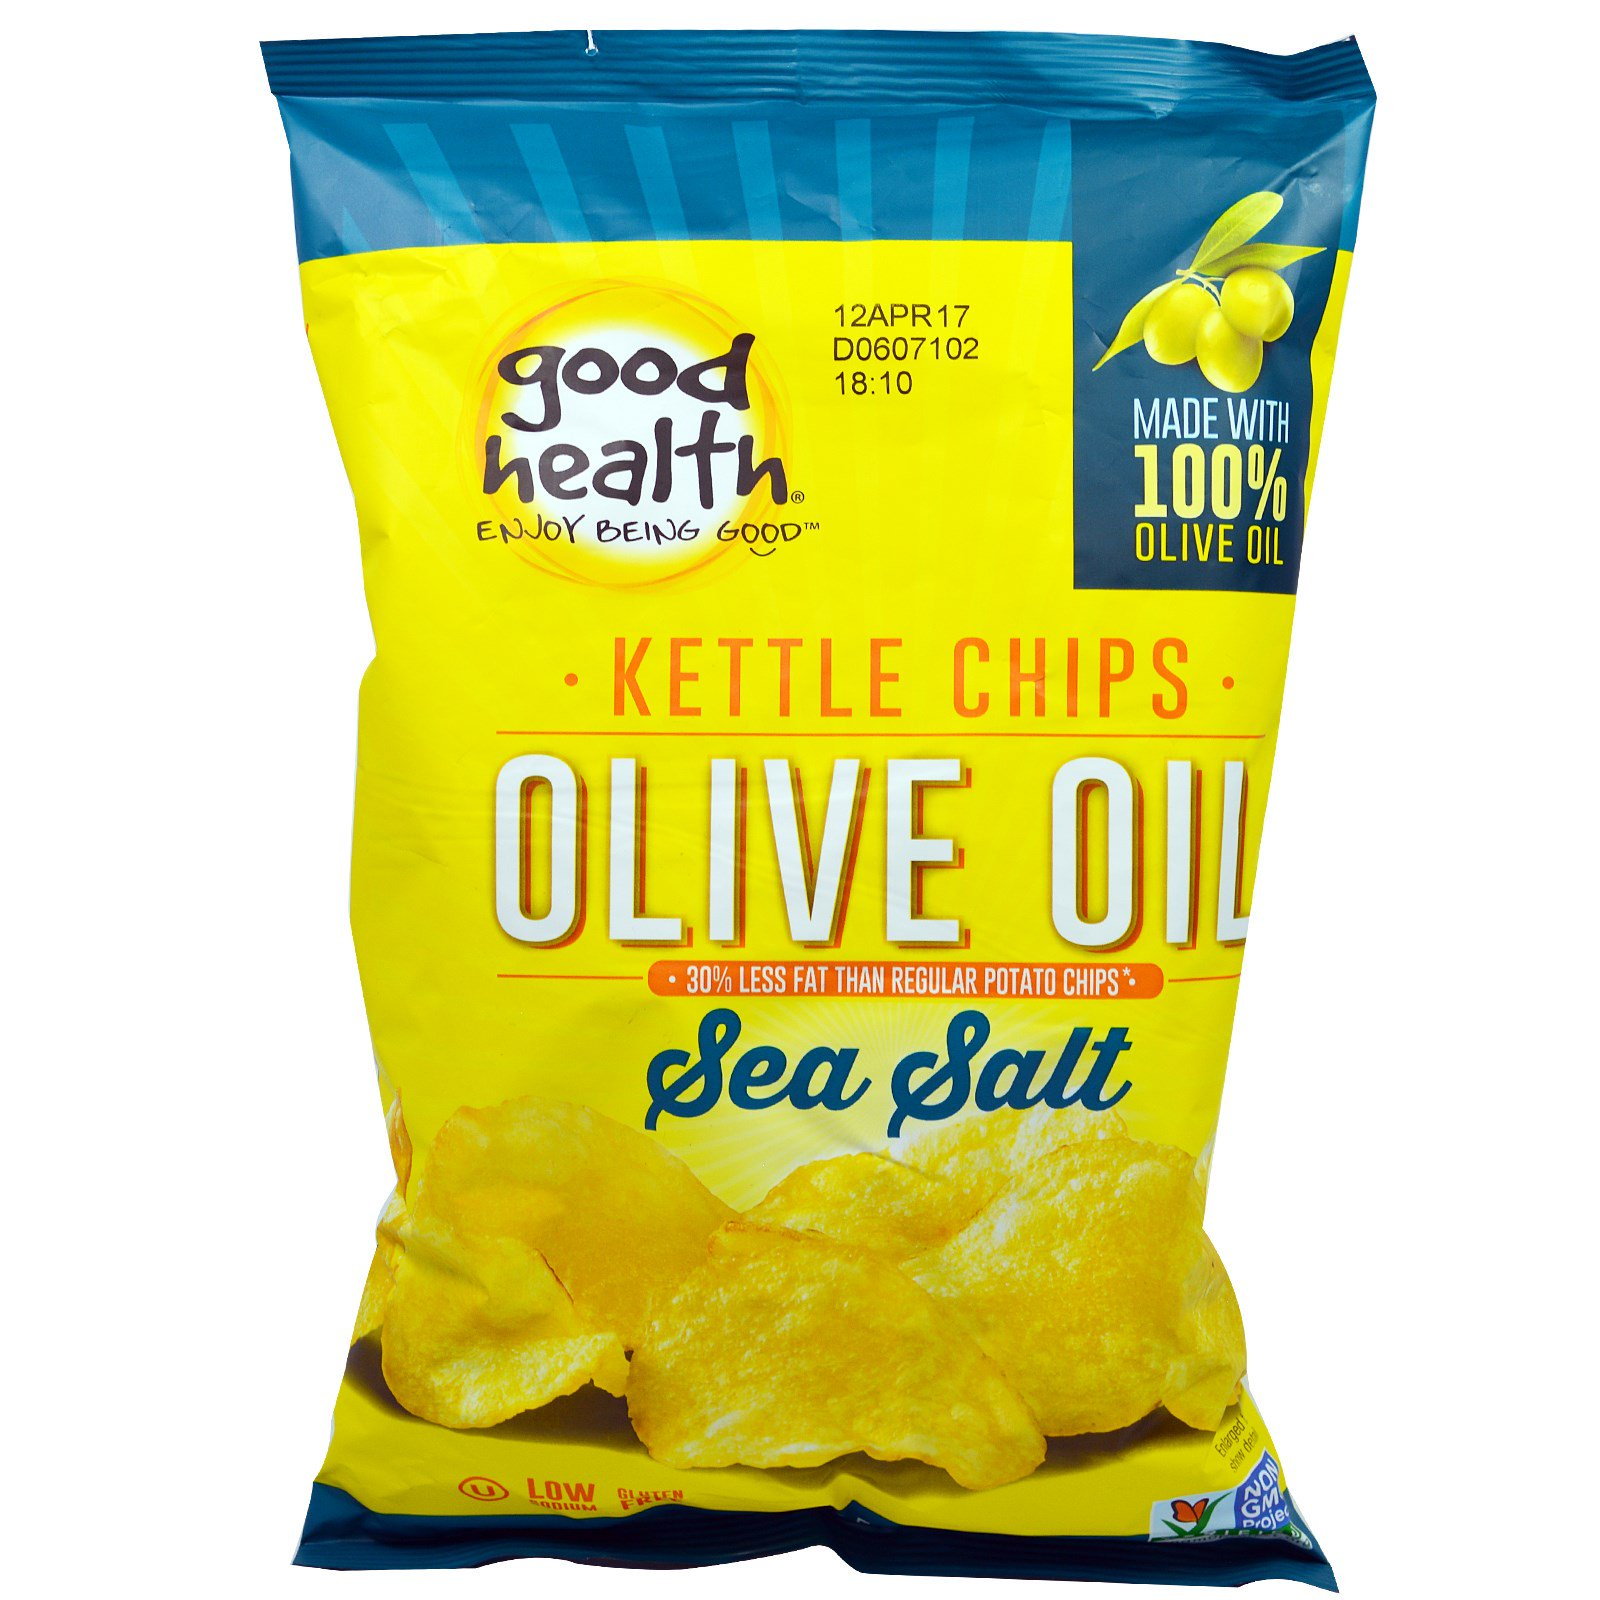 Good Health Natural Foods, Kettle Style Chips, Olive Oil, Sea Salt, 5 oz (pack of 6) by